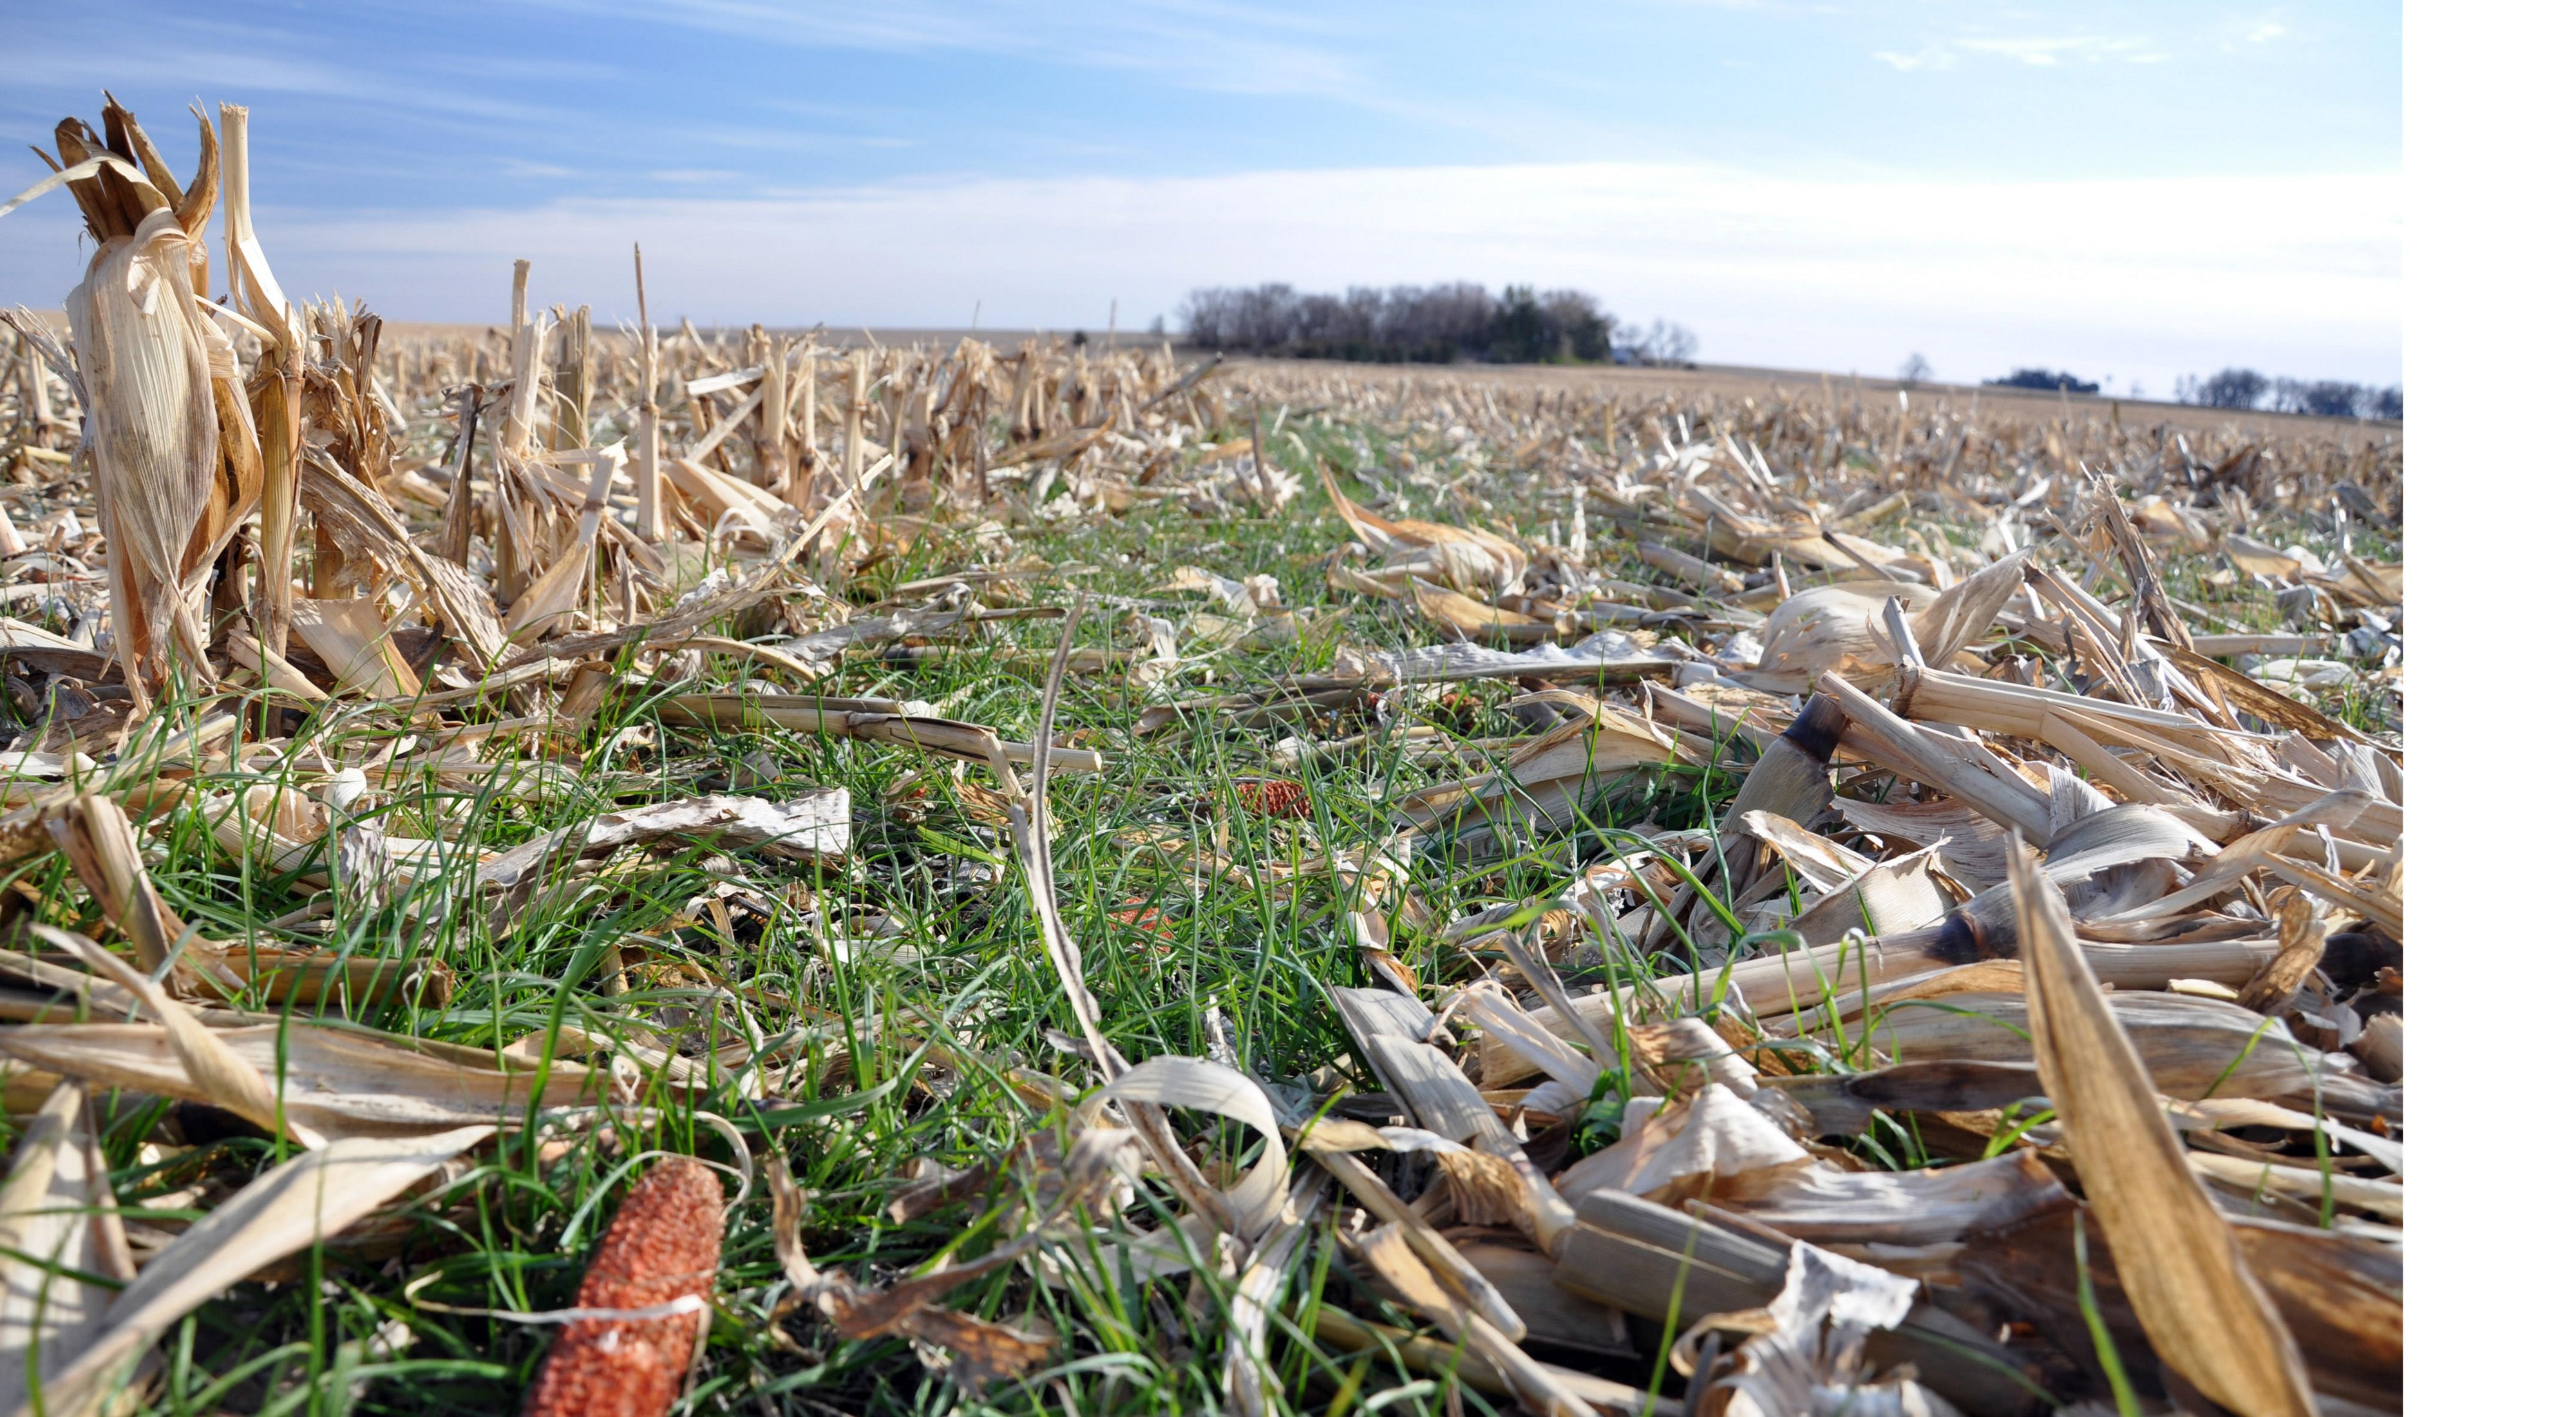 Rye cover crops in corn residue.